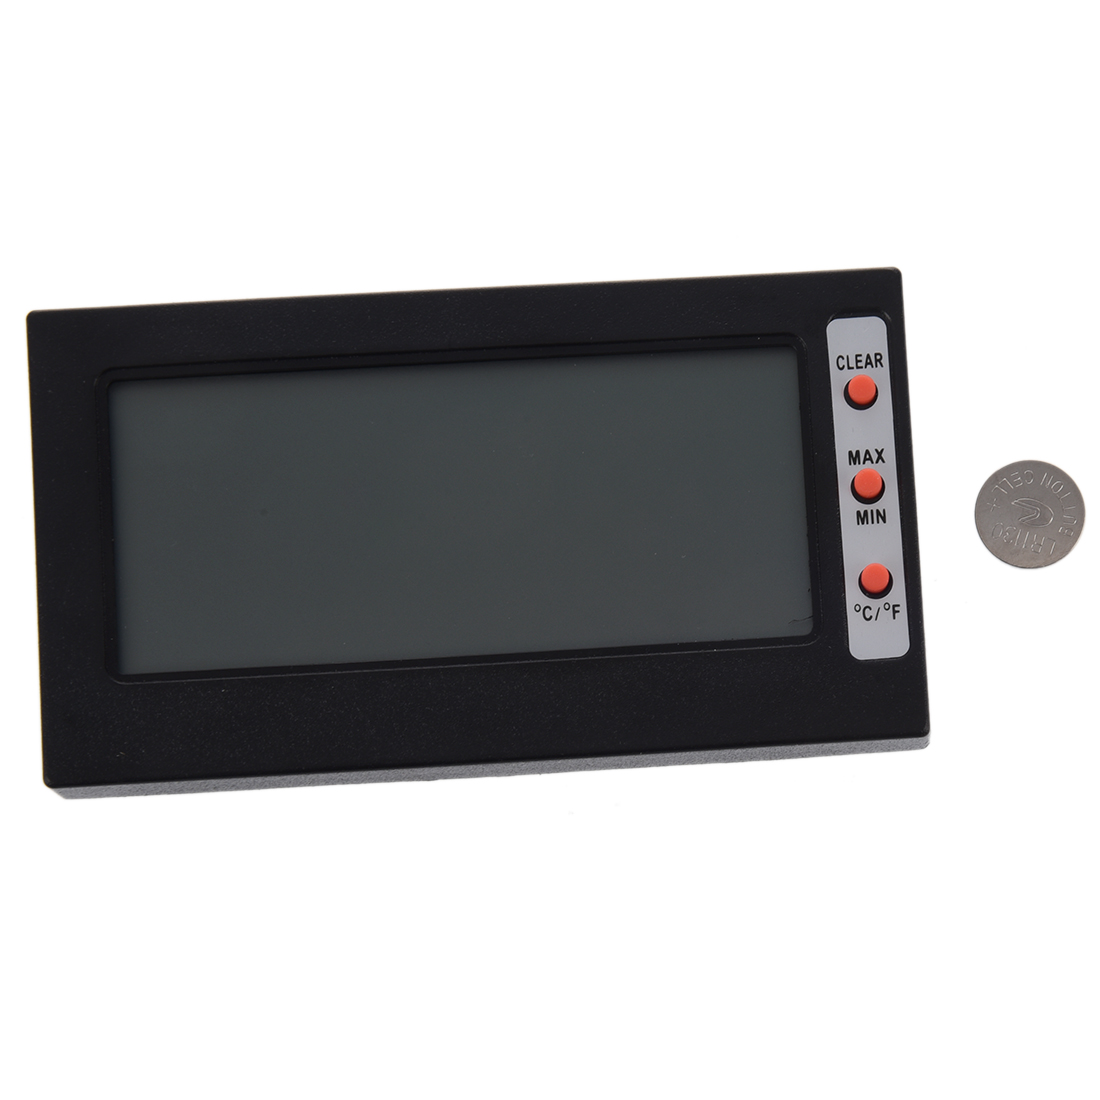 LCD Display Thermometer Hygrometer Temperature Humidity Meter Gauge #B12D1A